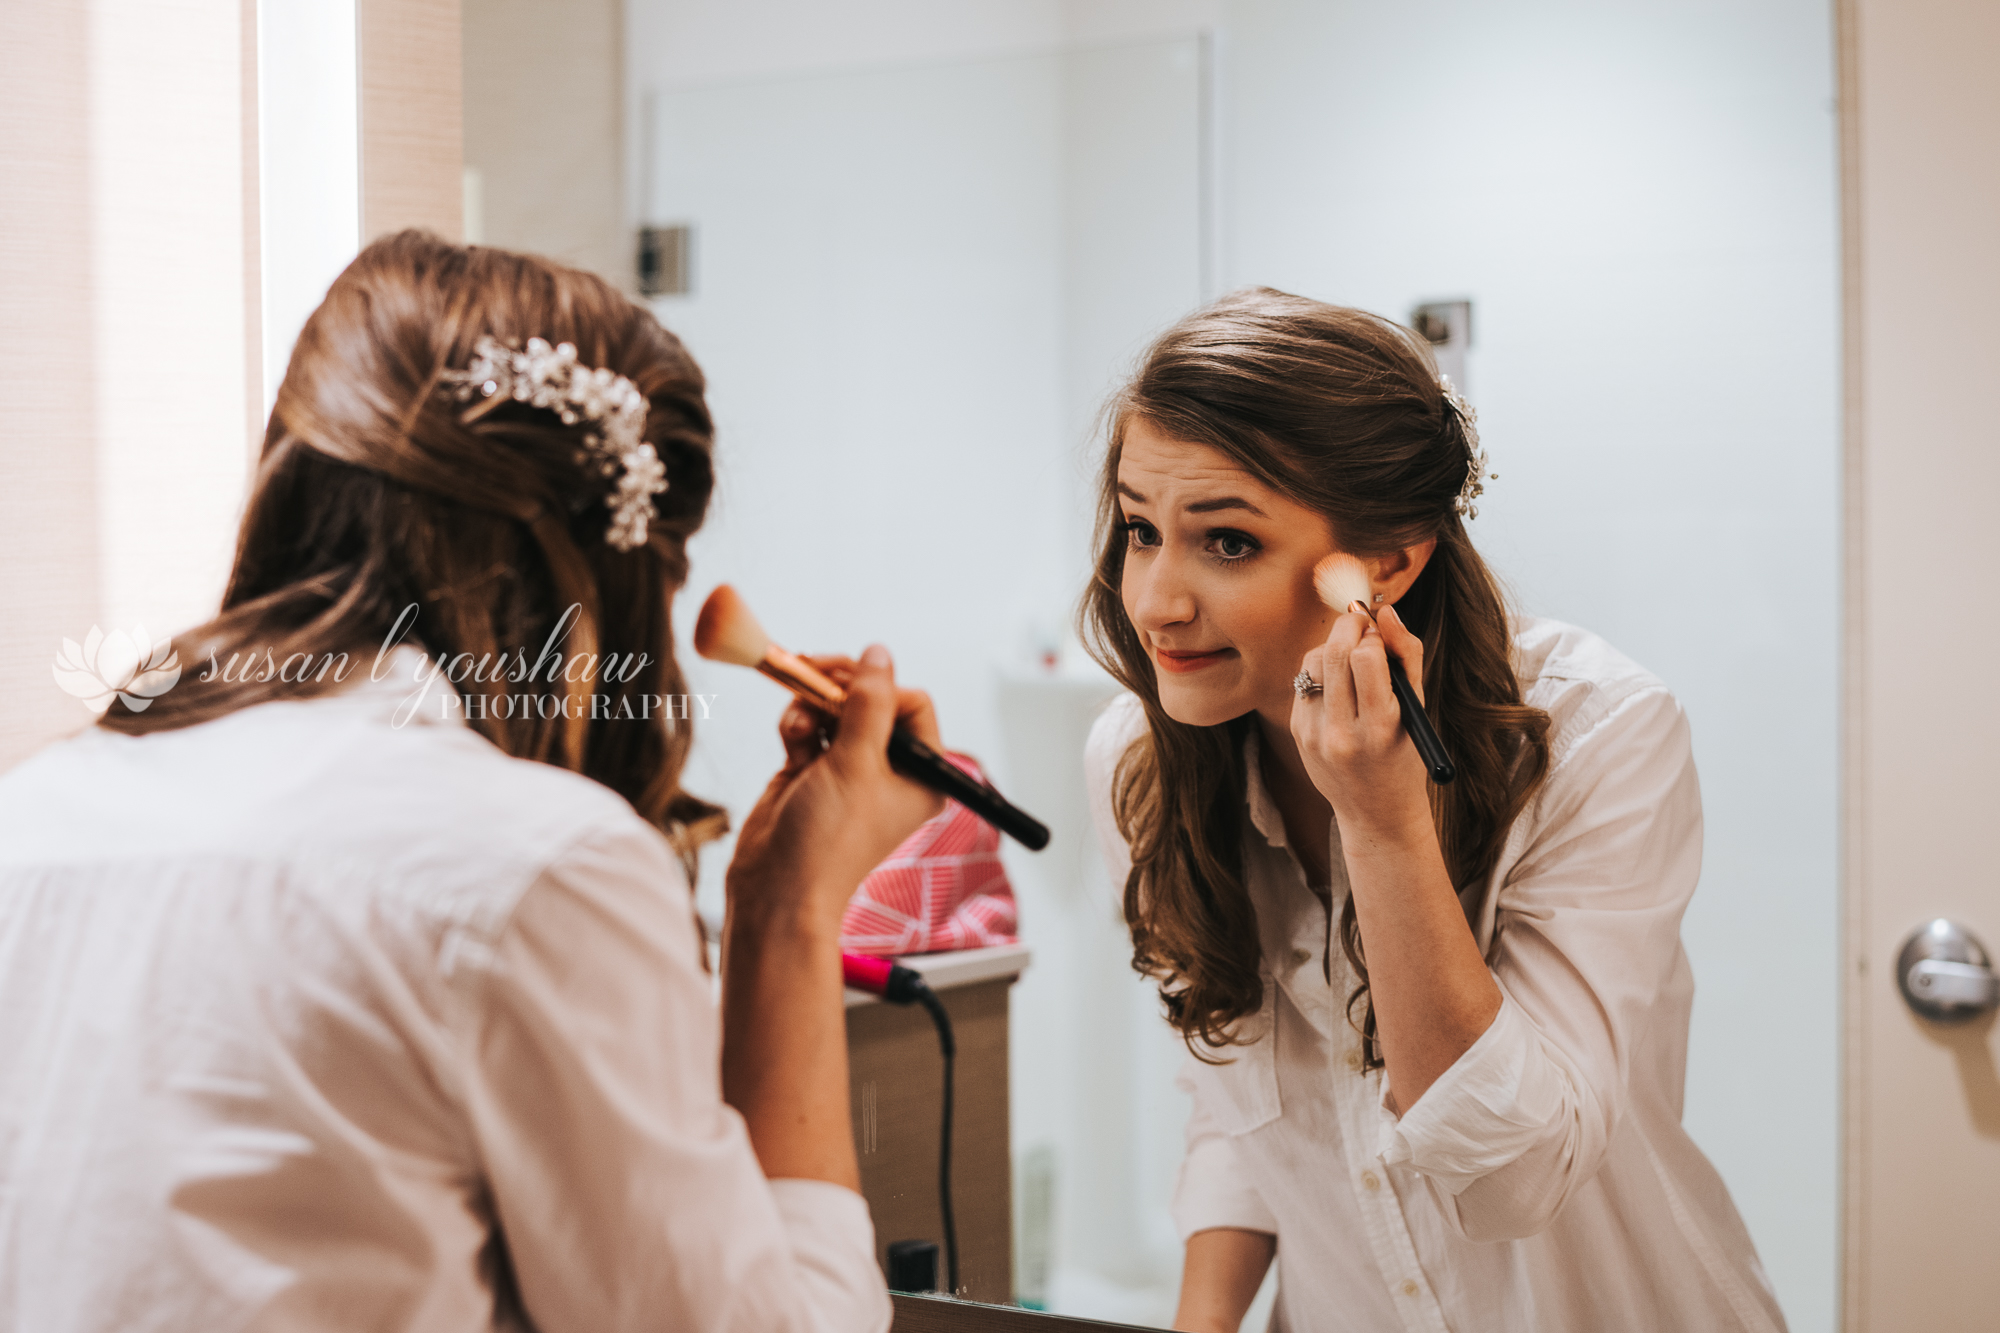 Chynna and John Wedding 05-18-2019 SLY Photography-7.jpg